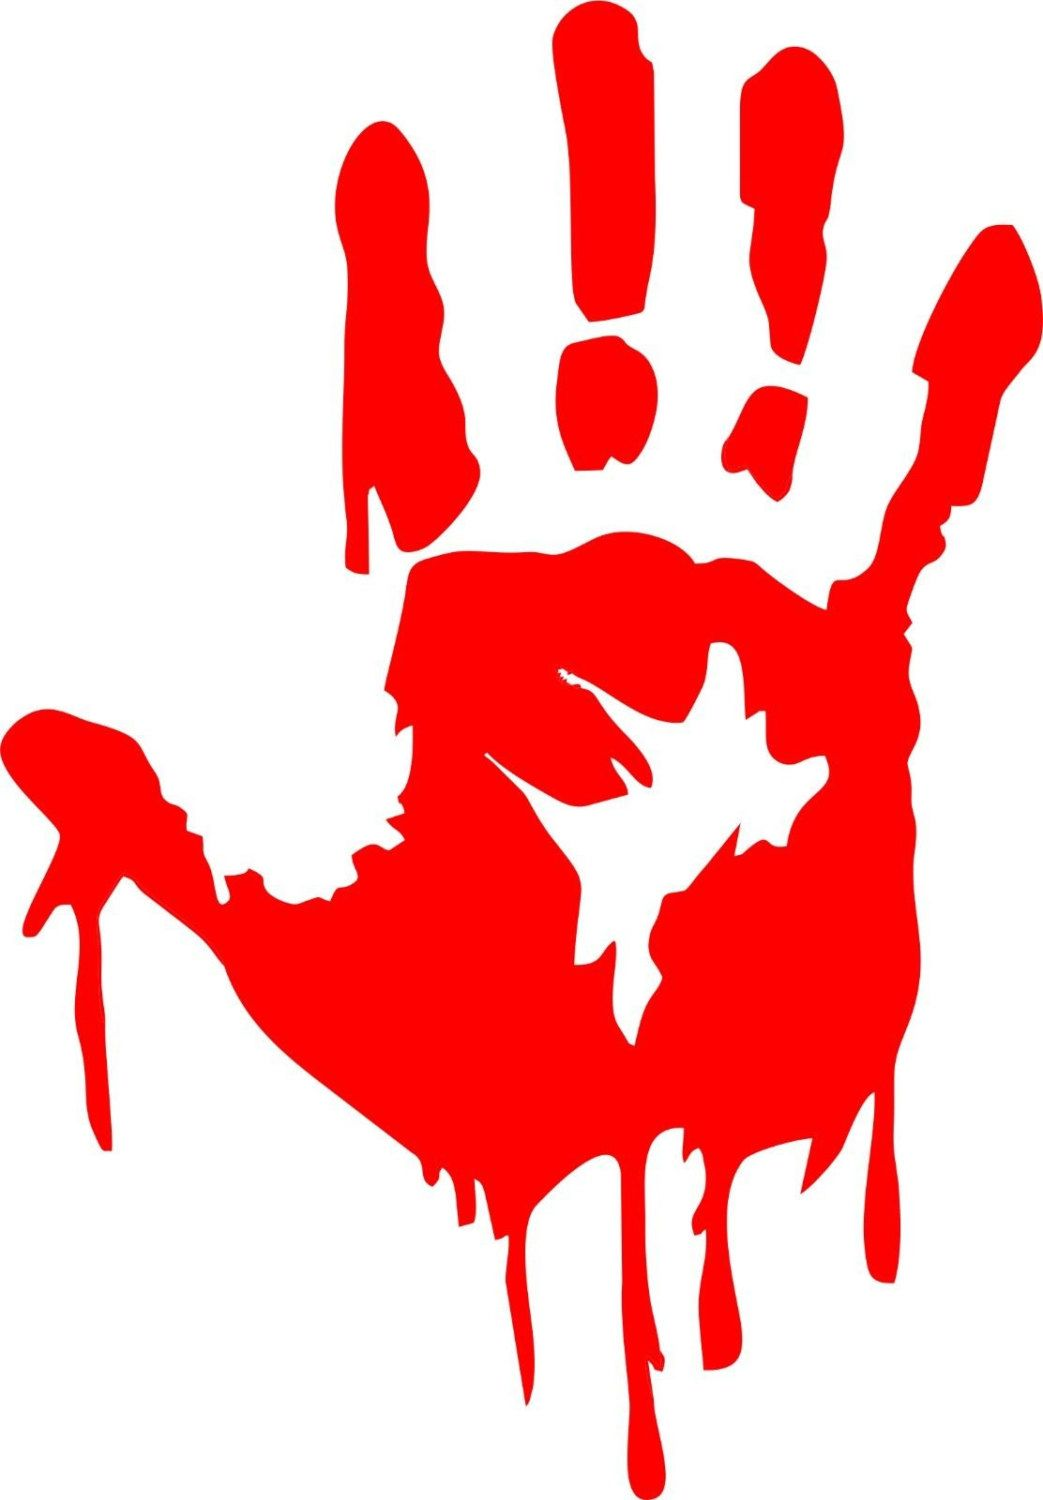 1043x1500 Zombie Bloody Hand Decal Item Details Decals